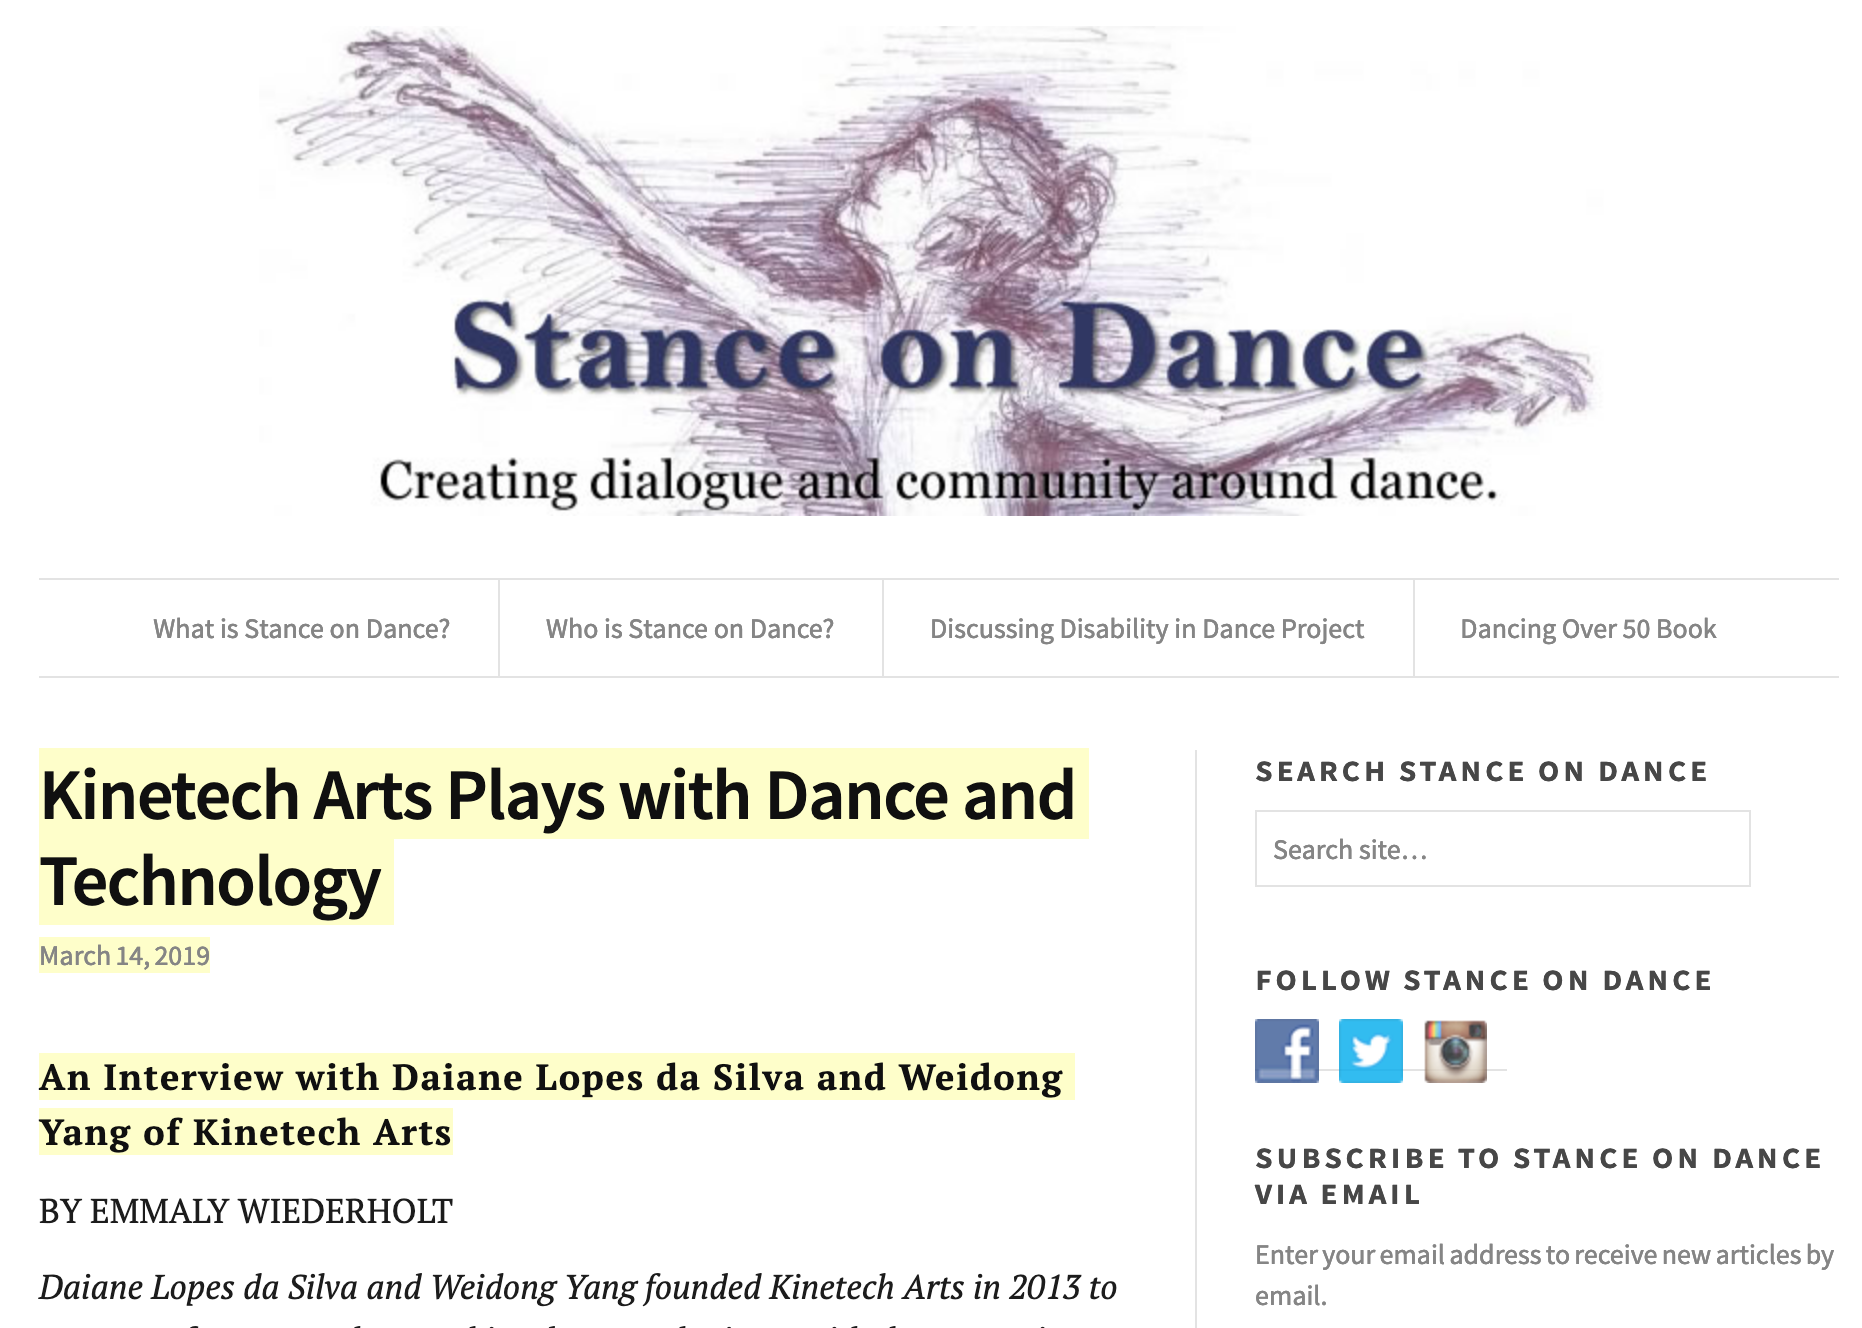 Interview - Kinetech Arts Plays with Dance and Technology: An Interview with Daiane Lopes da Silva and Weidong Yang of Kinetech Arts from Stance on Dance.